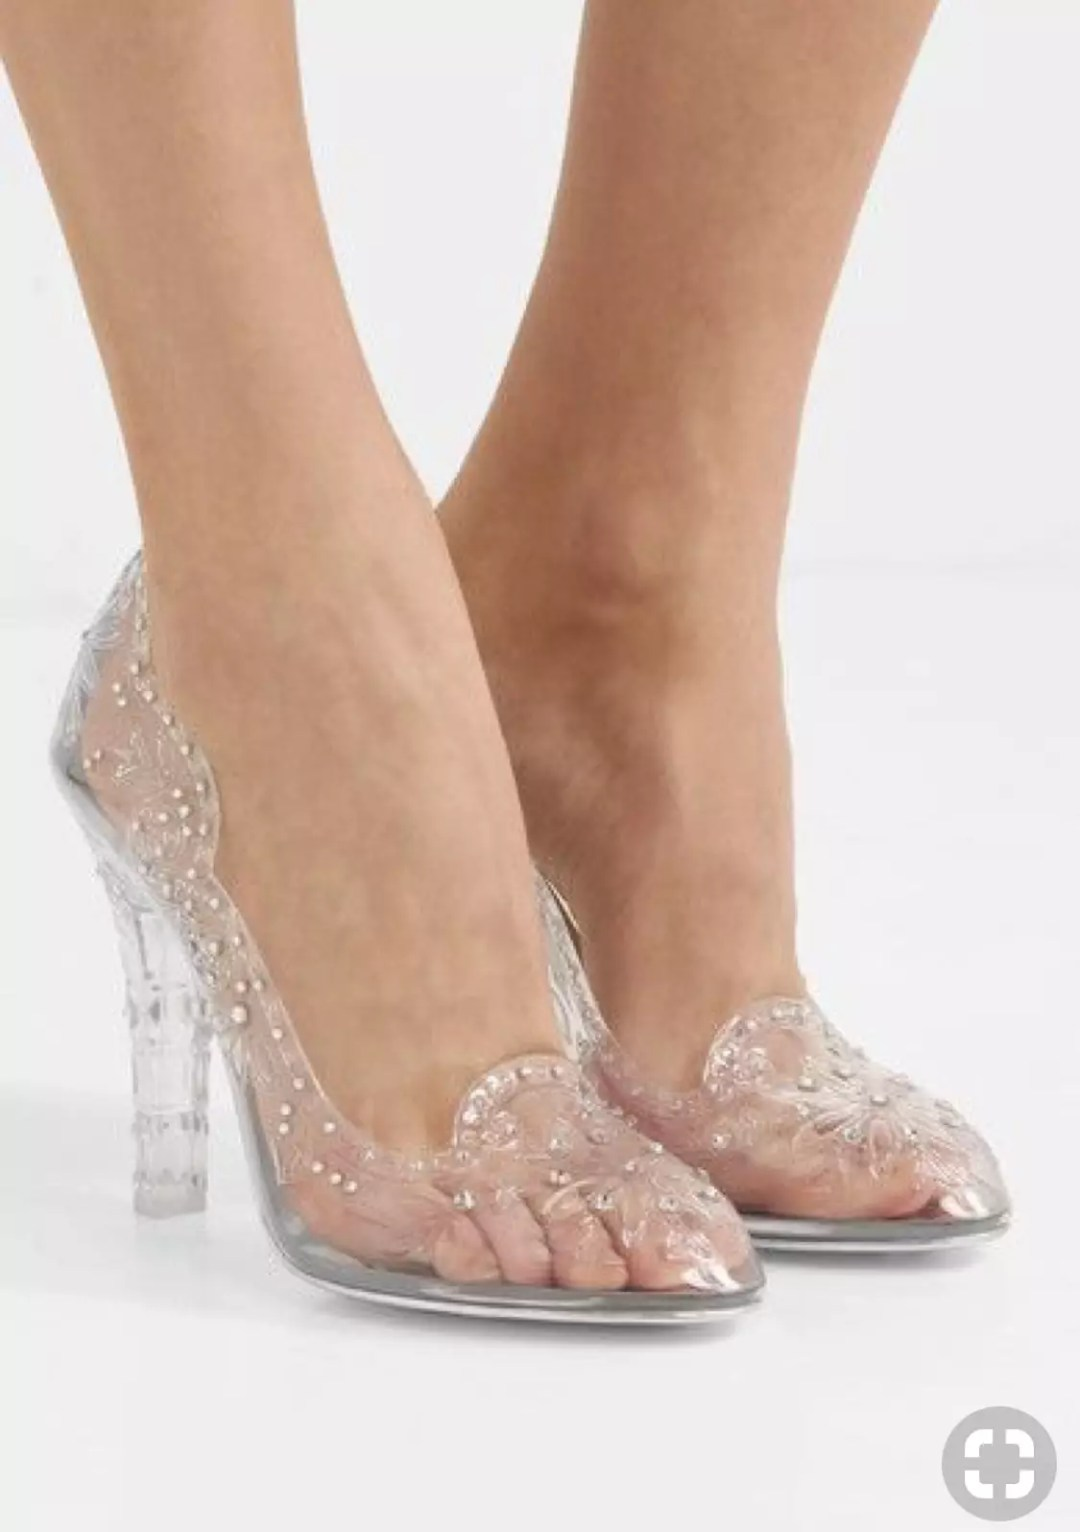 dolce and gabbana cinderella clear shoes alley girl trend review - Who did Design the Very First Clear Transparent Shoes?